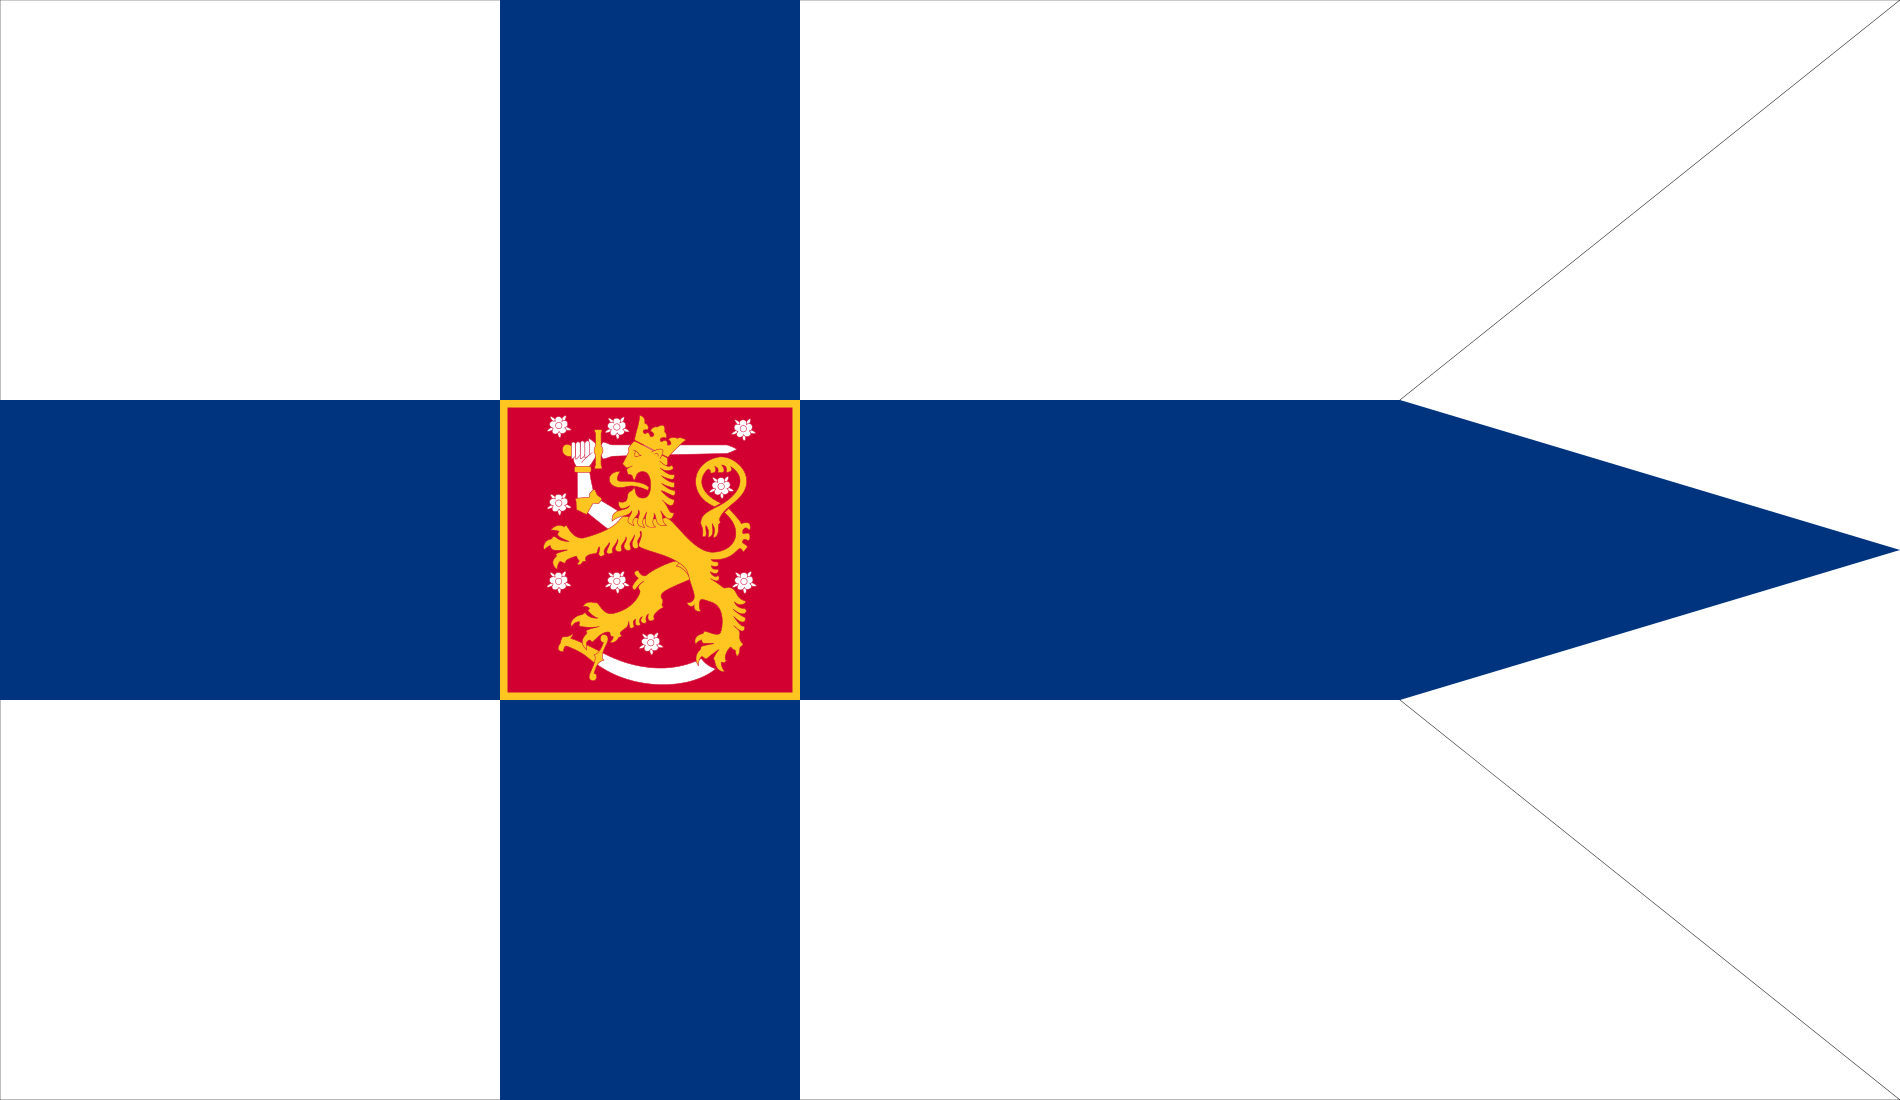 파일:external/upload.wikimedia.org/1900px-Military_Flag_of_Finland.svg.png